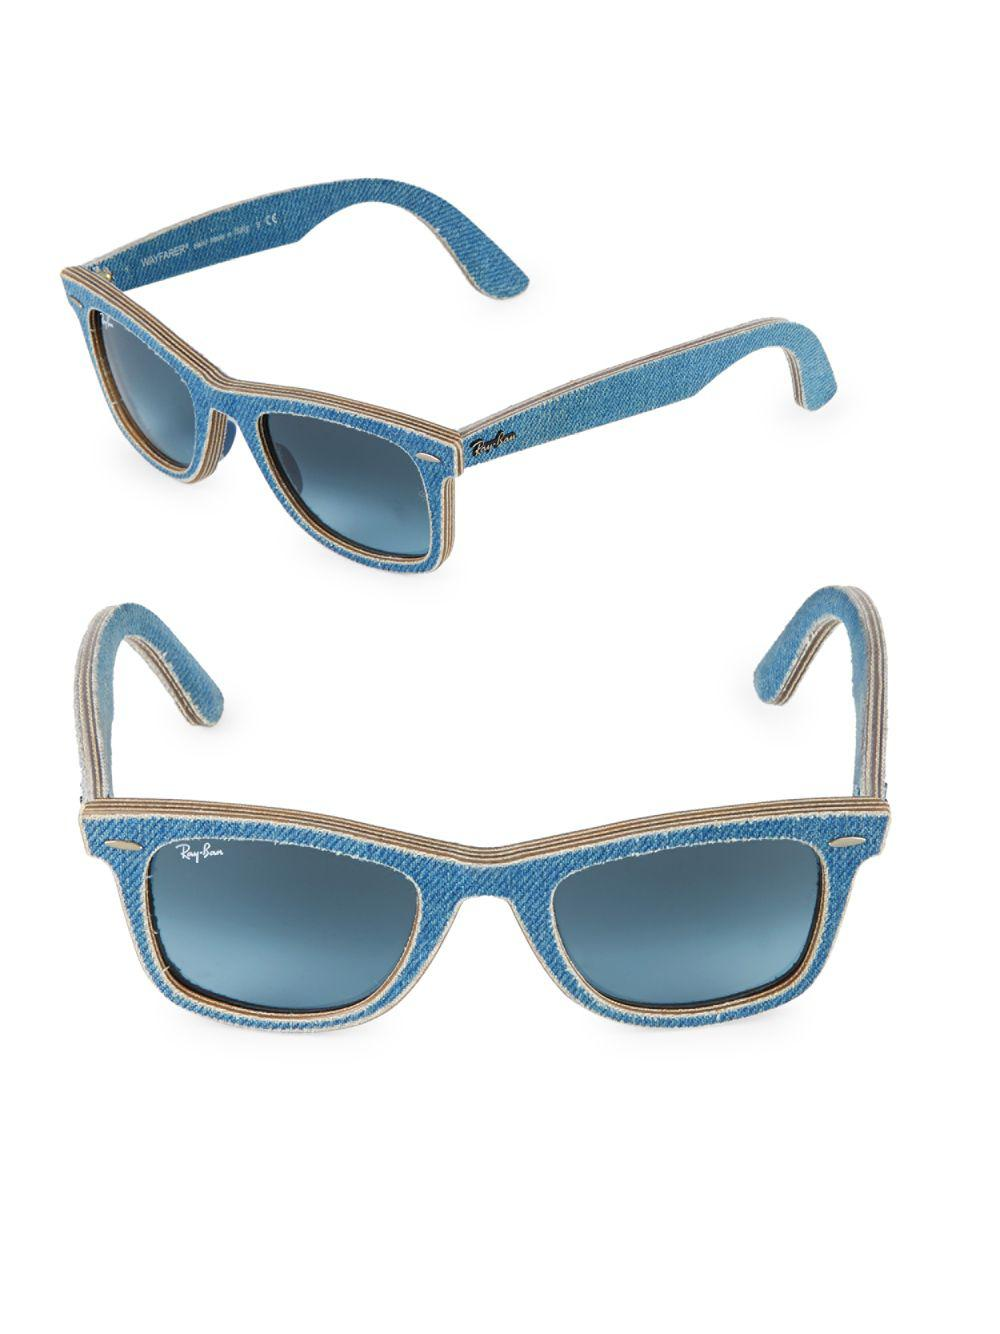 65c8f0c8c2 Lyst - Ray-Ban 50mm Classic Wayfarer Denim Sunglasses in Blue